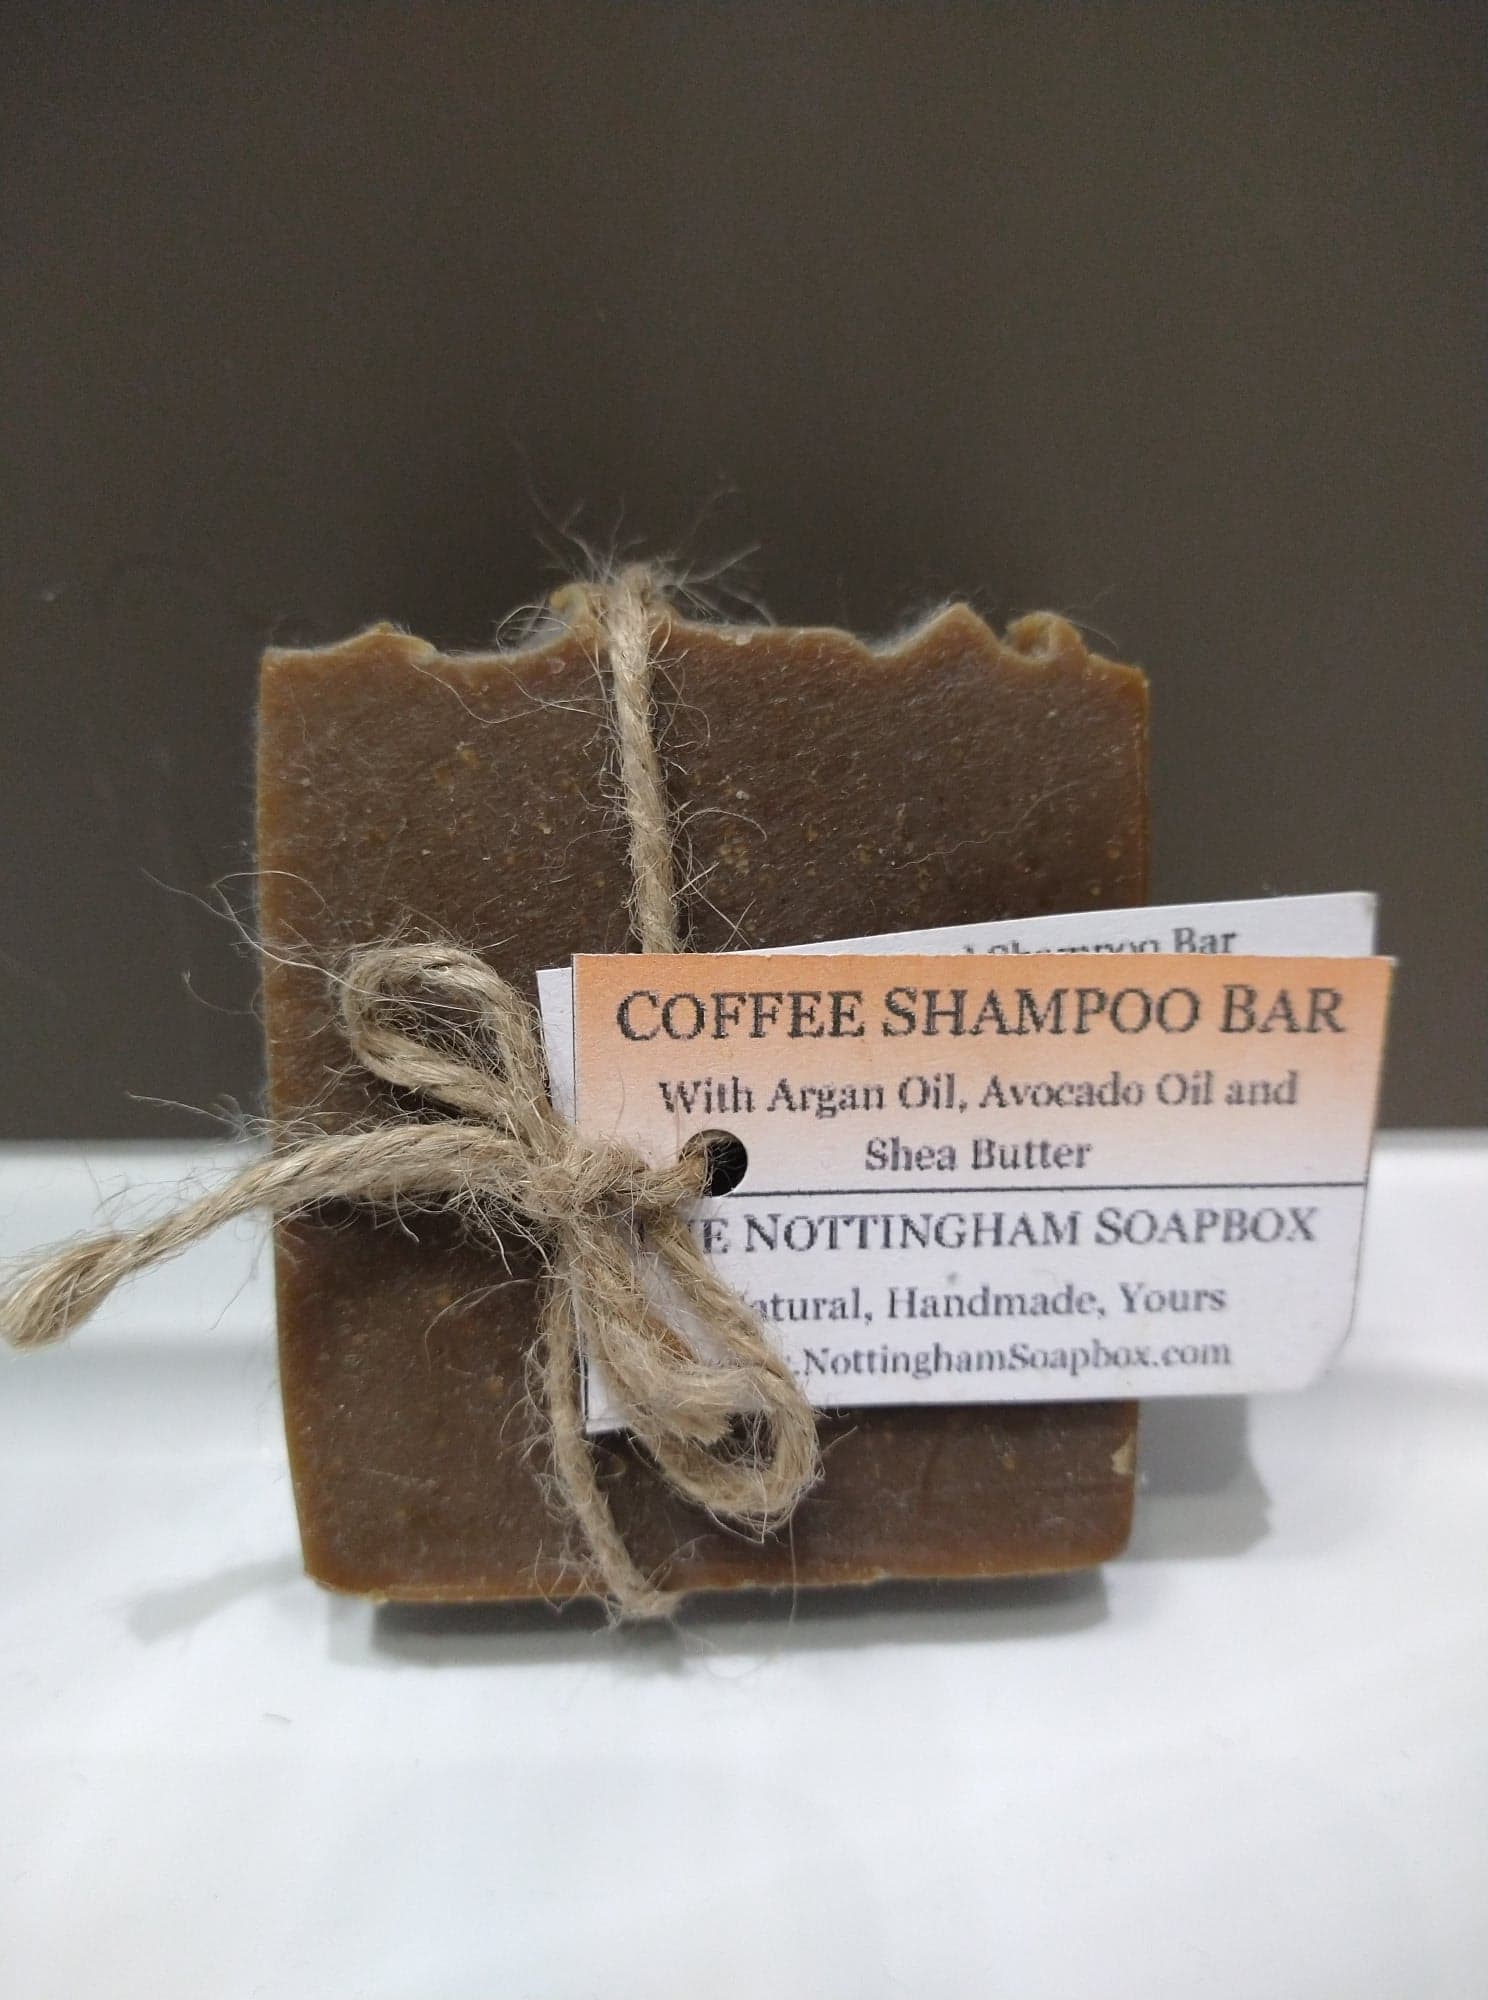 A brown block of Nottingham Soapbox coffee shampoo bar, with a string bow and label.